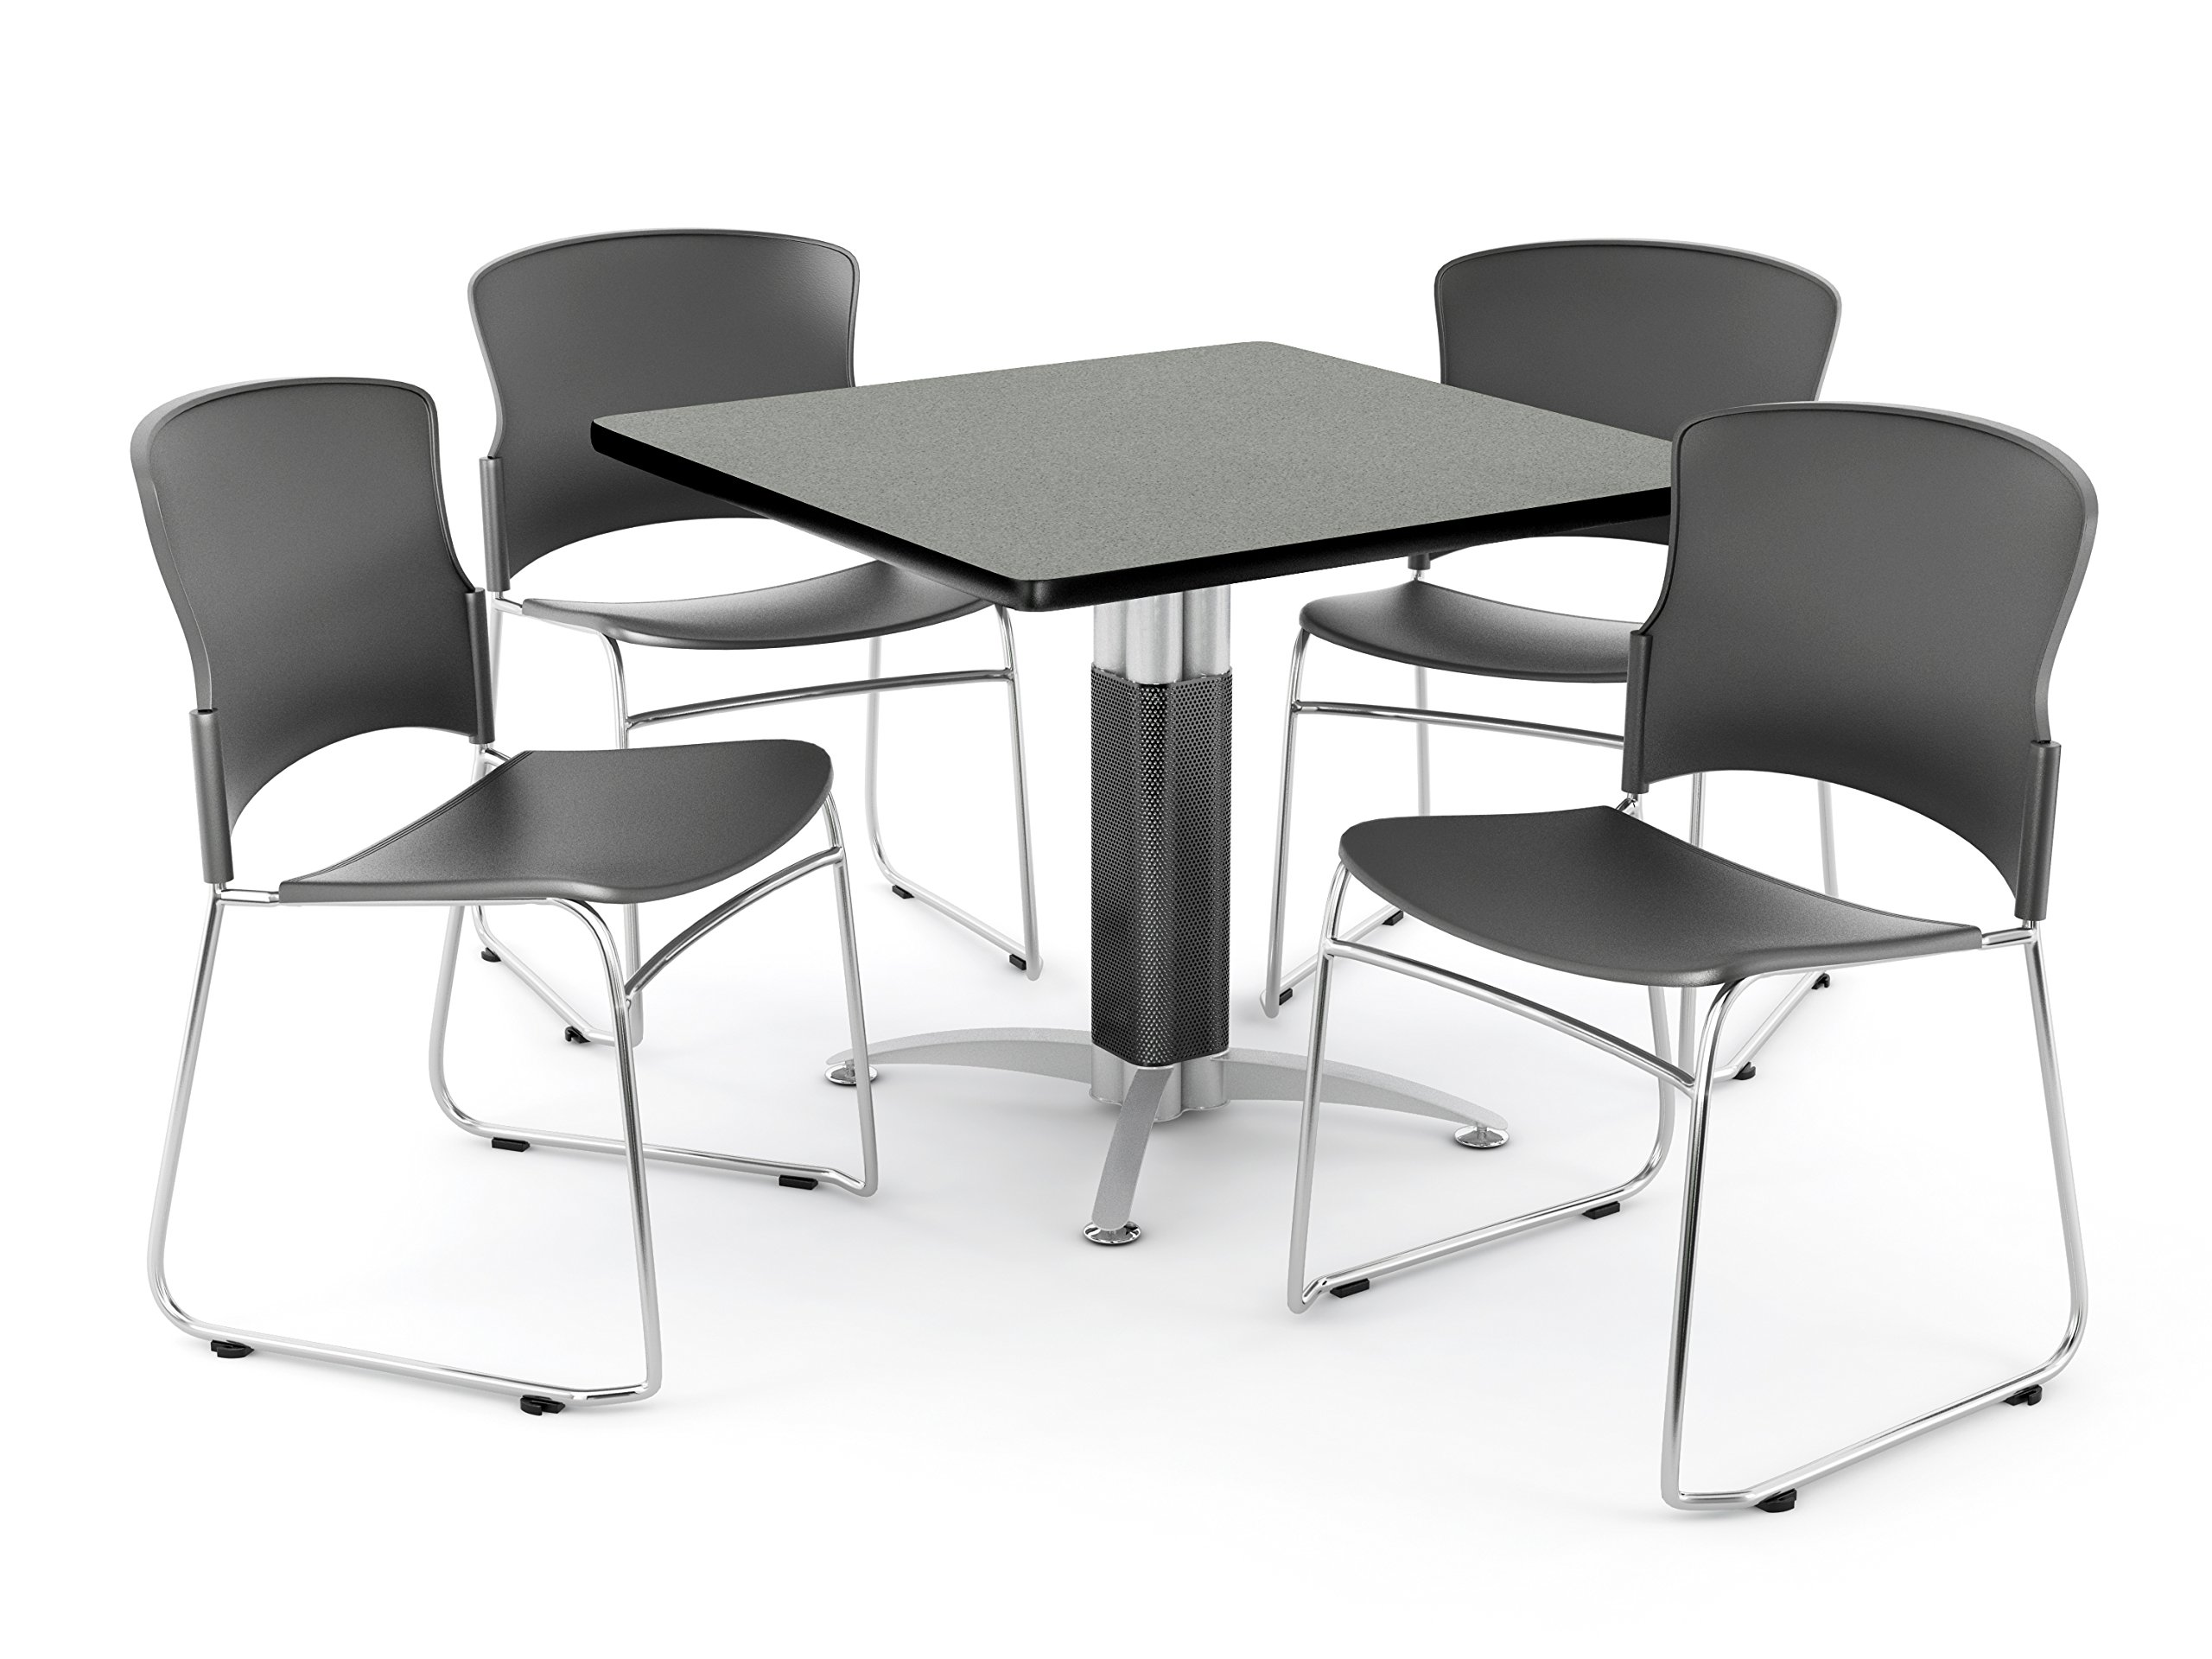 OFM PKG-BRK-030-0005 Breakroom Package, Gray Nebula Table/Gray Chair by OFM